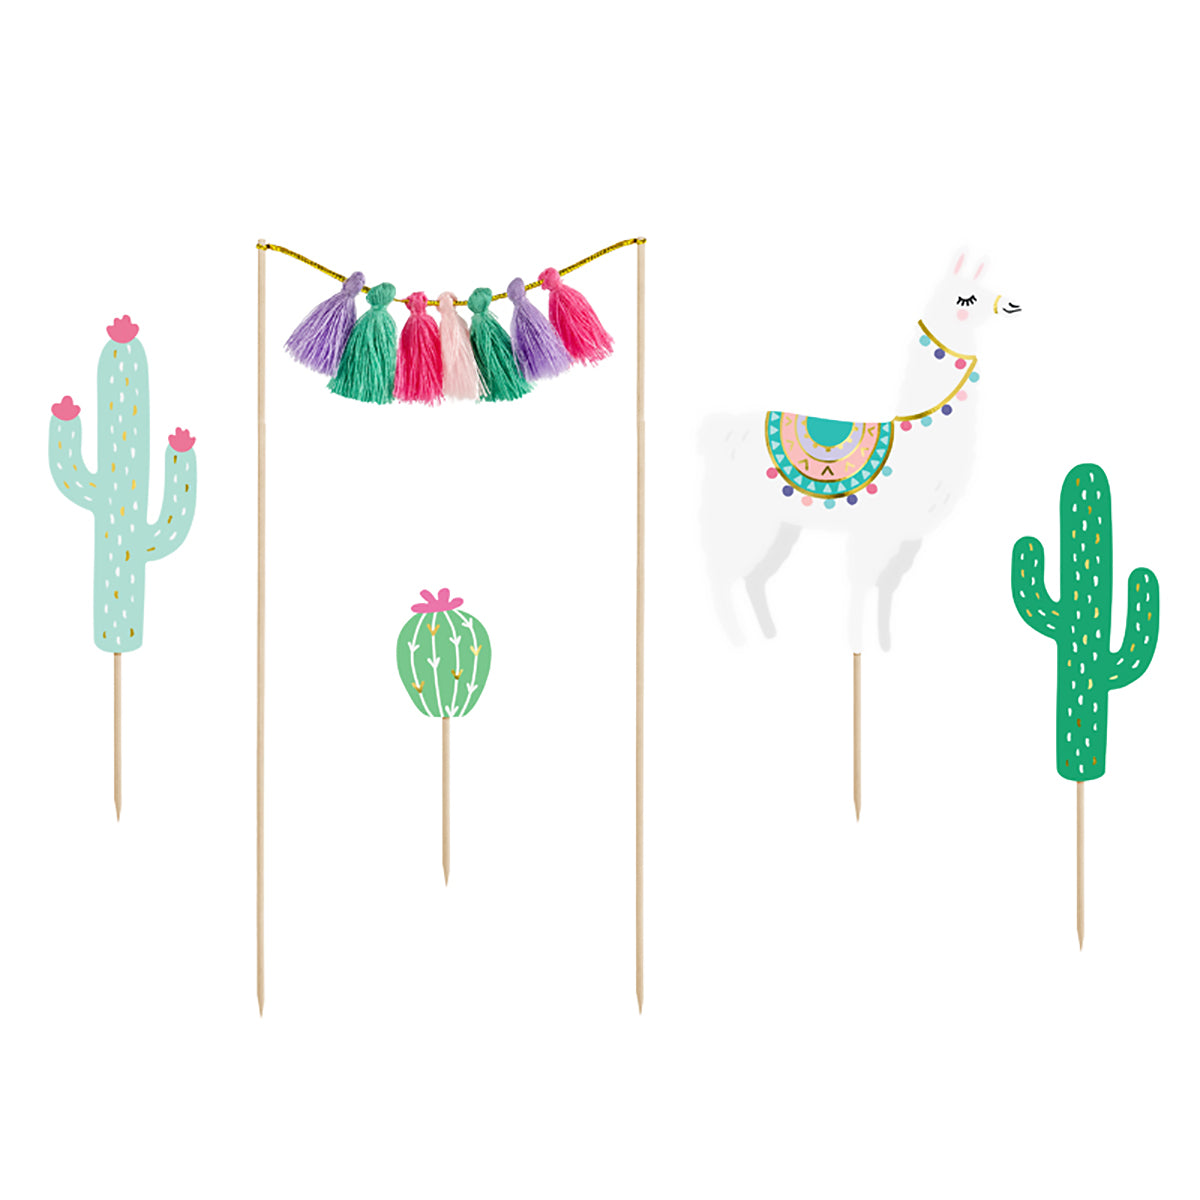 Boho Llama Fun Cake Toppers 5ct | The Party Darling